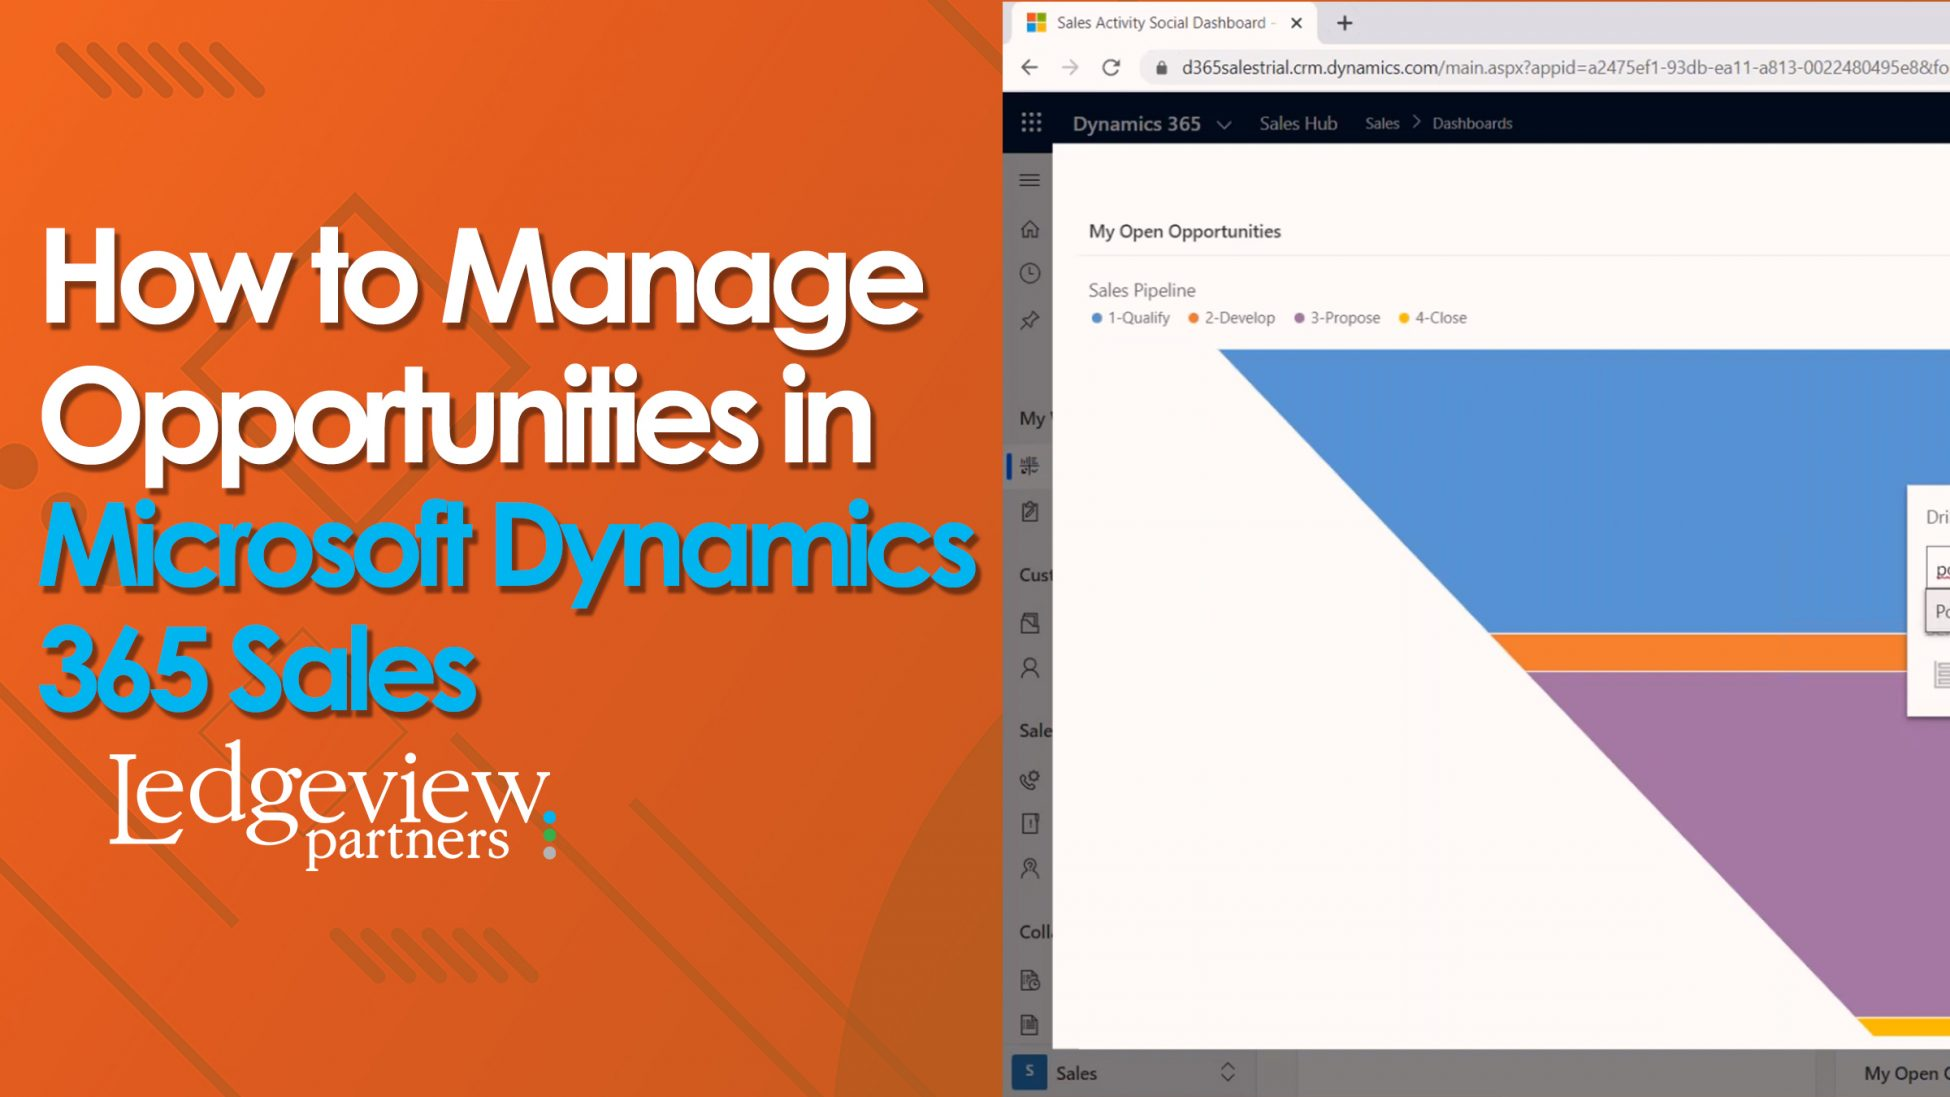 How to Manage Opportunities in Microsoft Dynamics 365 Sales